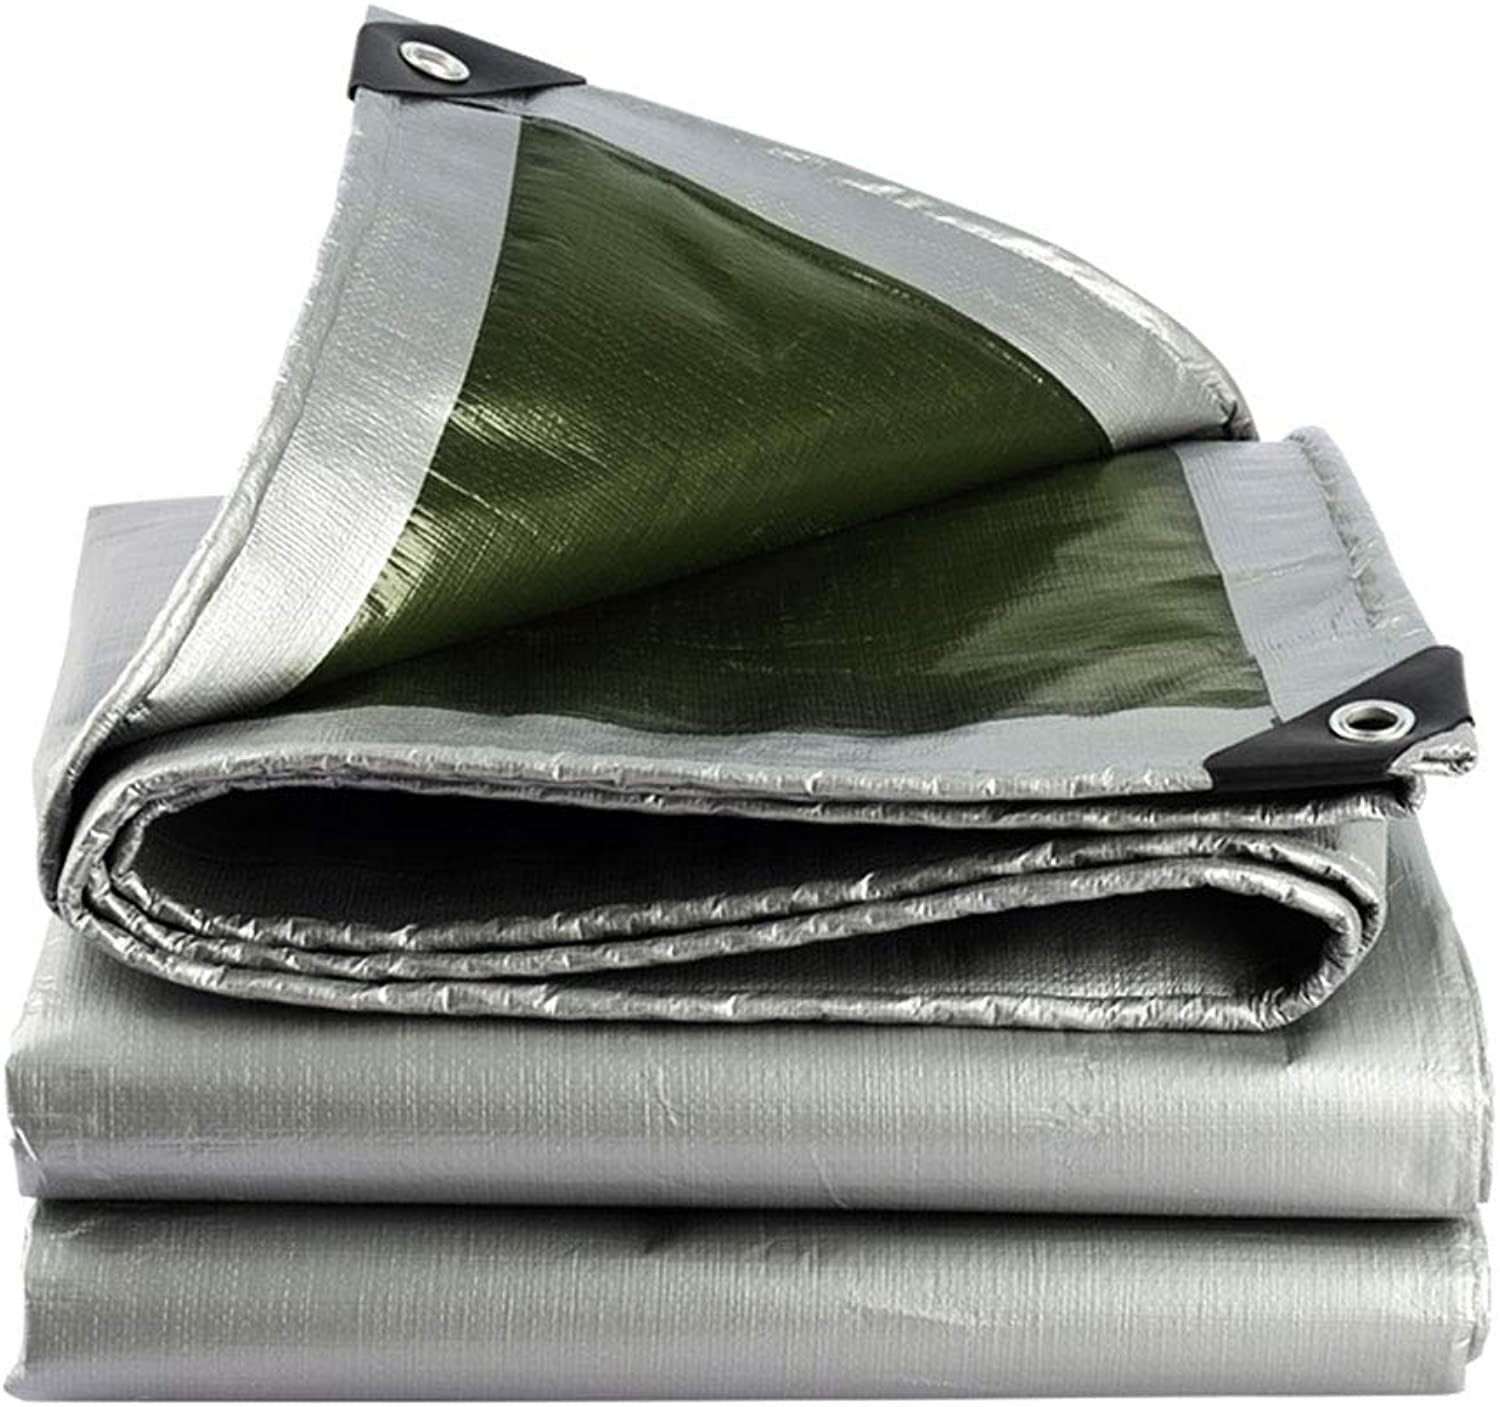 Truck Rainproof Tarpaulin   Indoor and Outdoor Predective Cover   Sunshade Cloth  Weight 180g   M2, MultiSize Optional